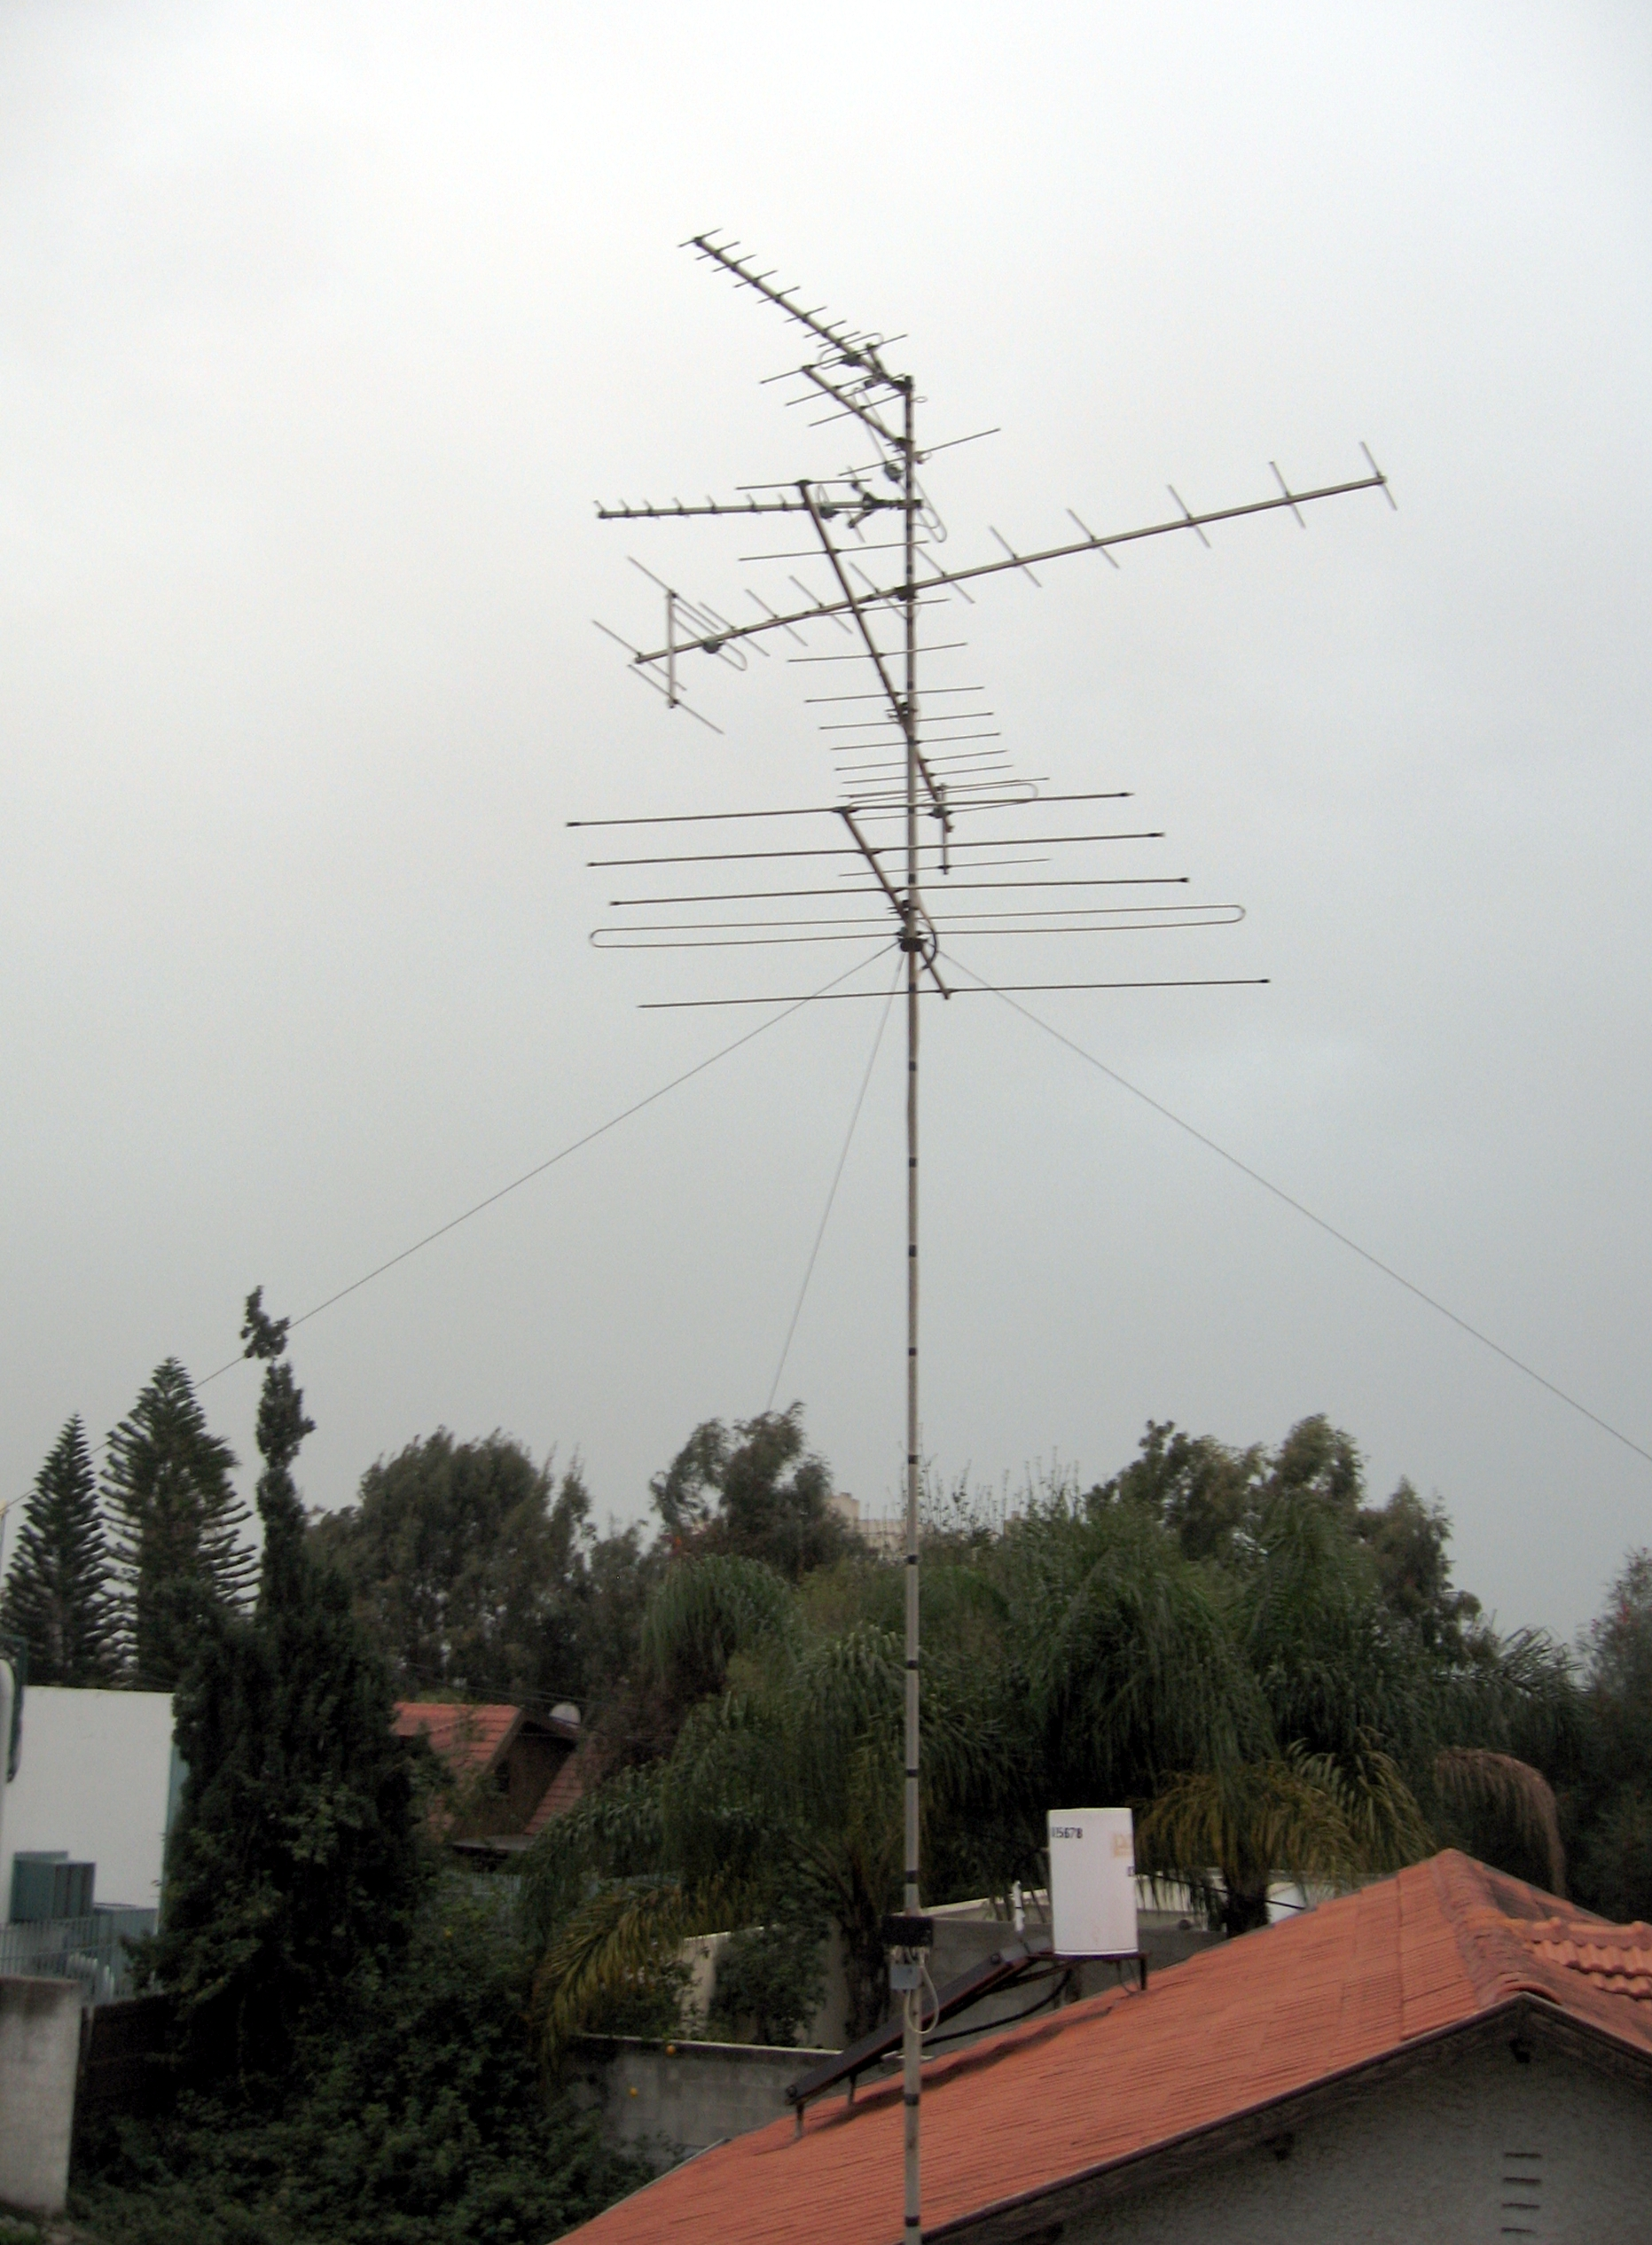 Rooftop television antennas like these are required to receive terrestrial television in fringe reception areas far from the television station.